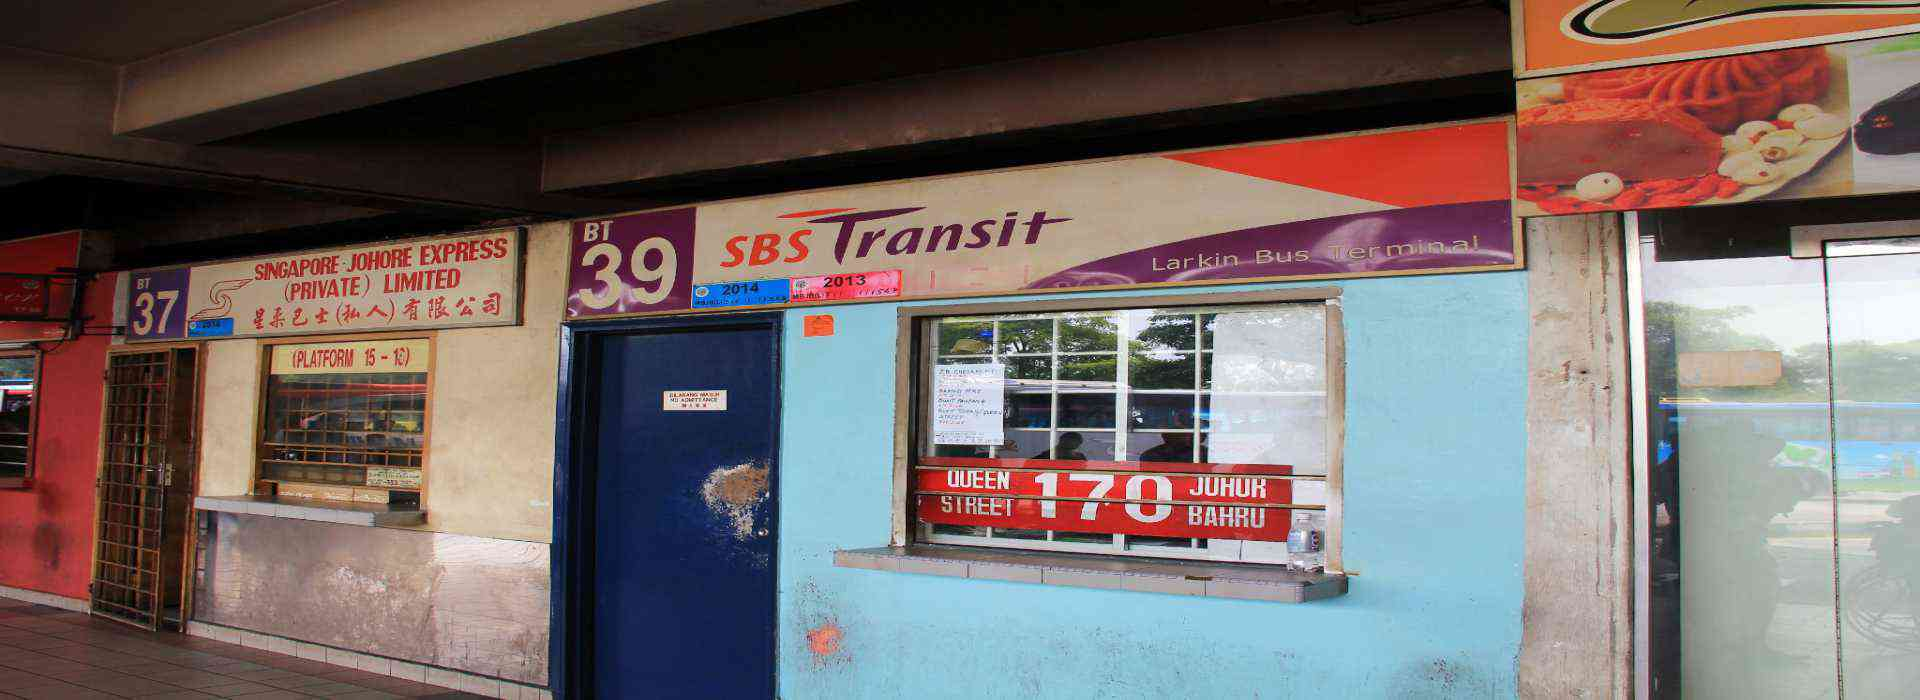 Sbs transit customer service number customerservicedirectory